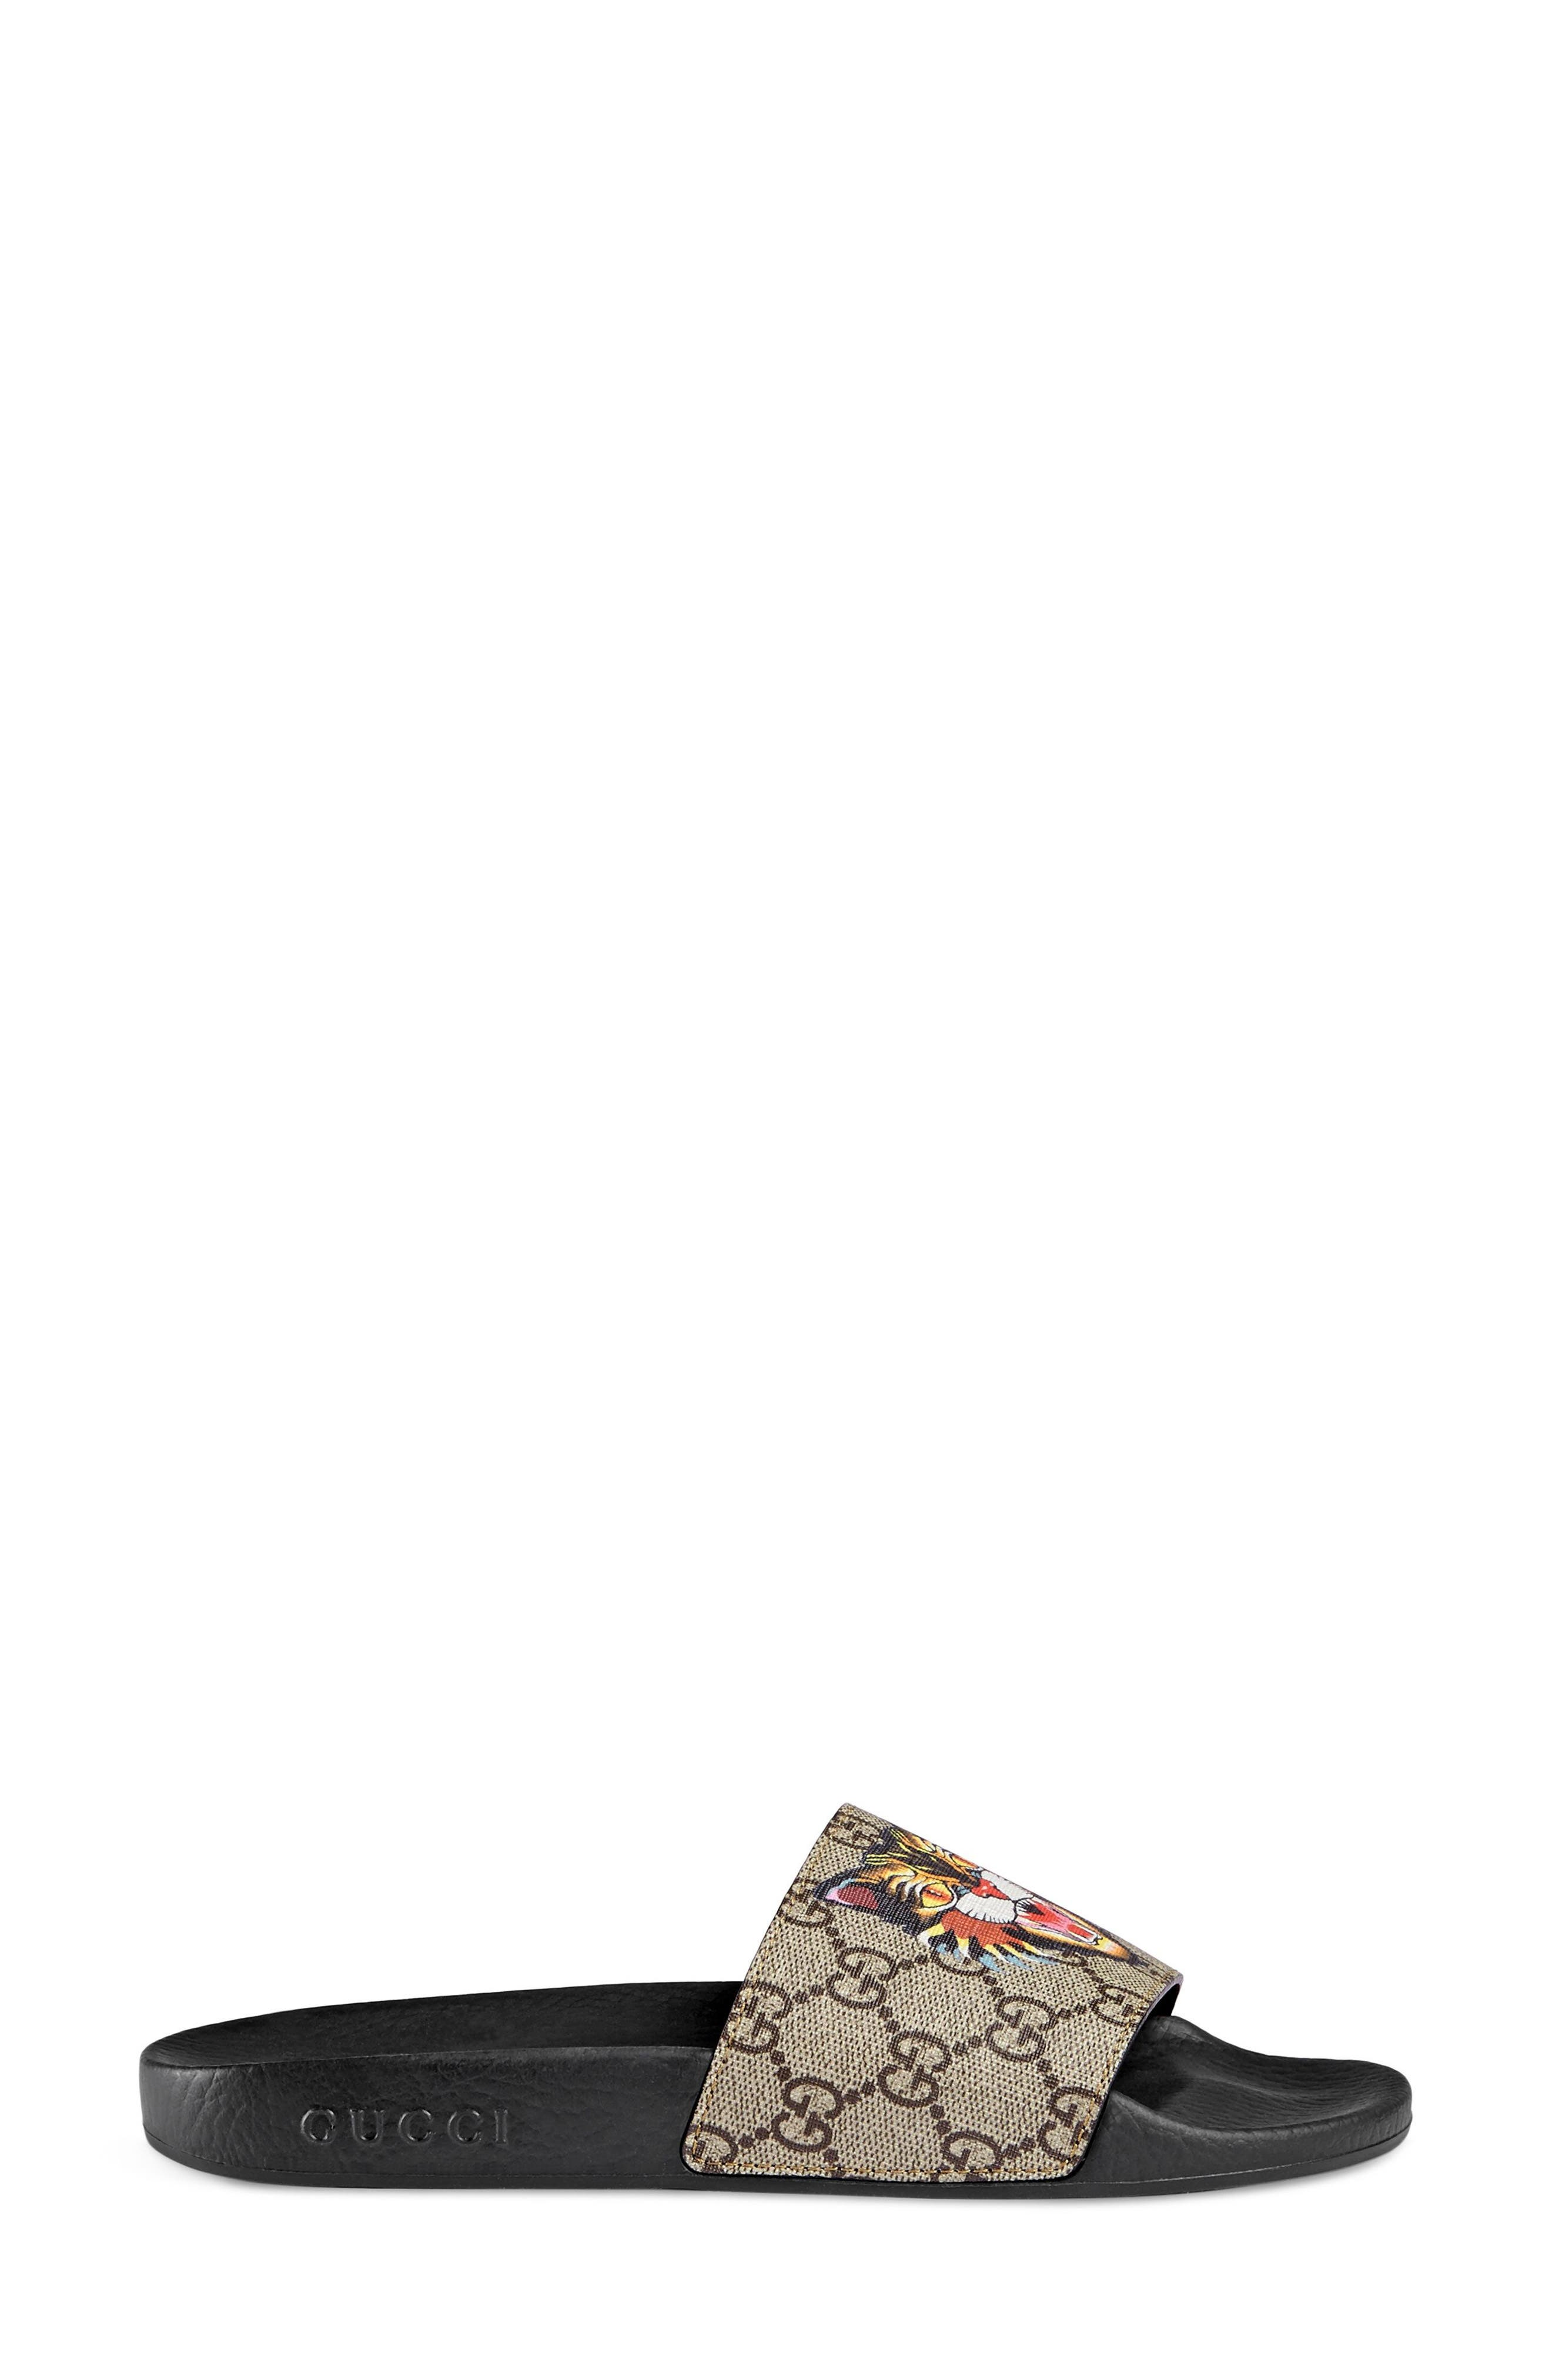 Main Image - Gucci Pursuit Tiger Print Slide Sandal (Women)